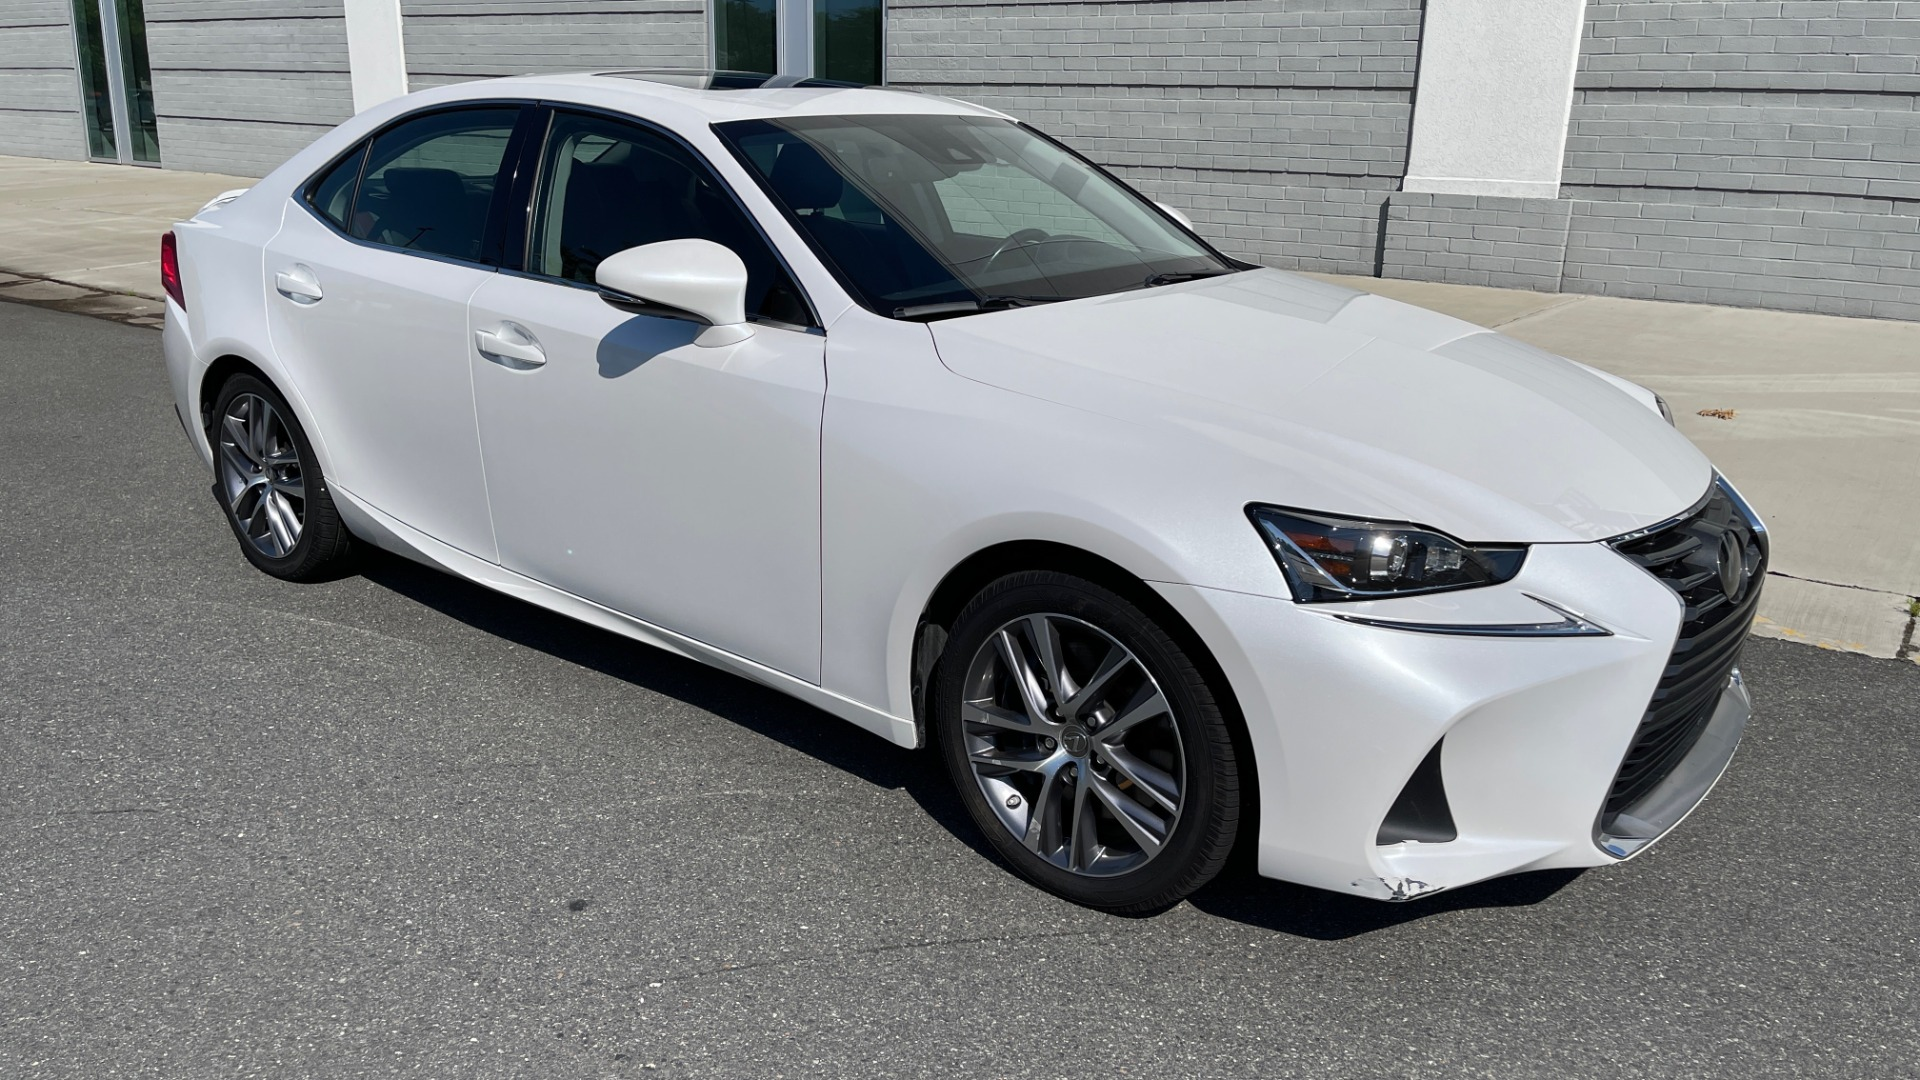 Used 2018 Lexus IS 300 / 2.0L TURBO / 8-SPD AUTO / SUNROOF / REARVIEW for sale $29,495 at Formula Imports in Charlotte NC 28227 6